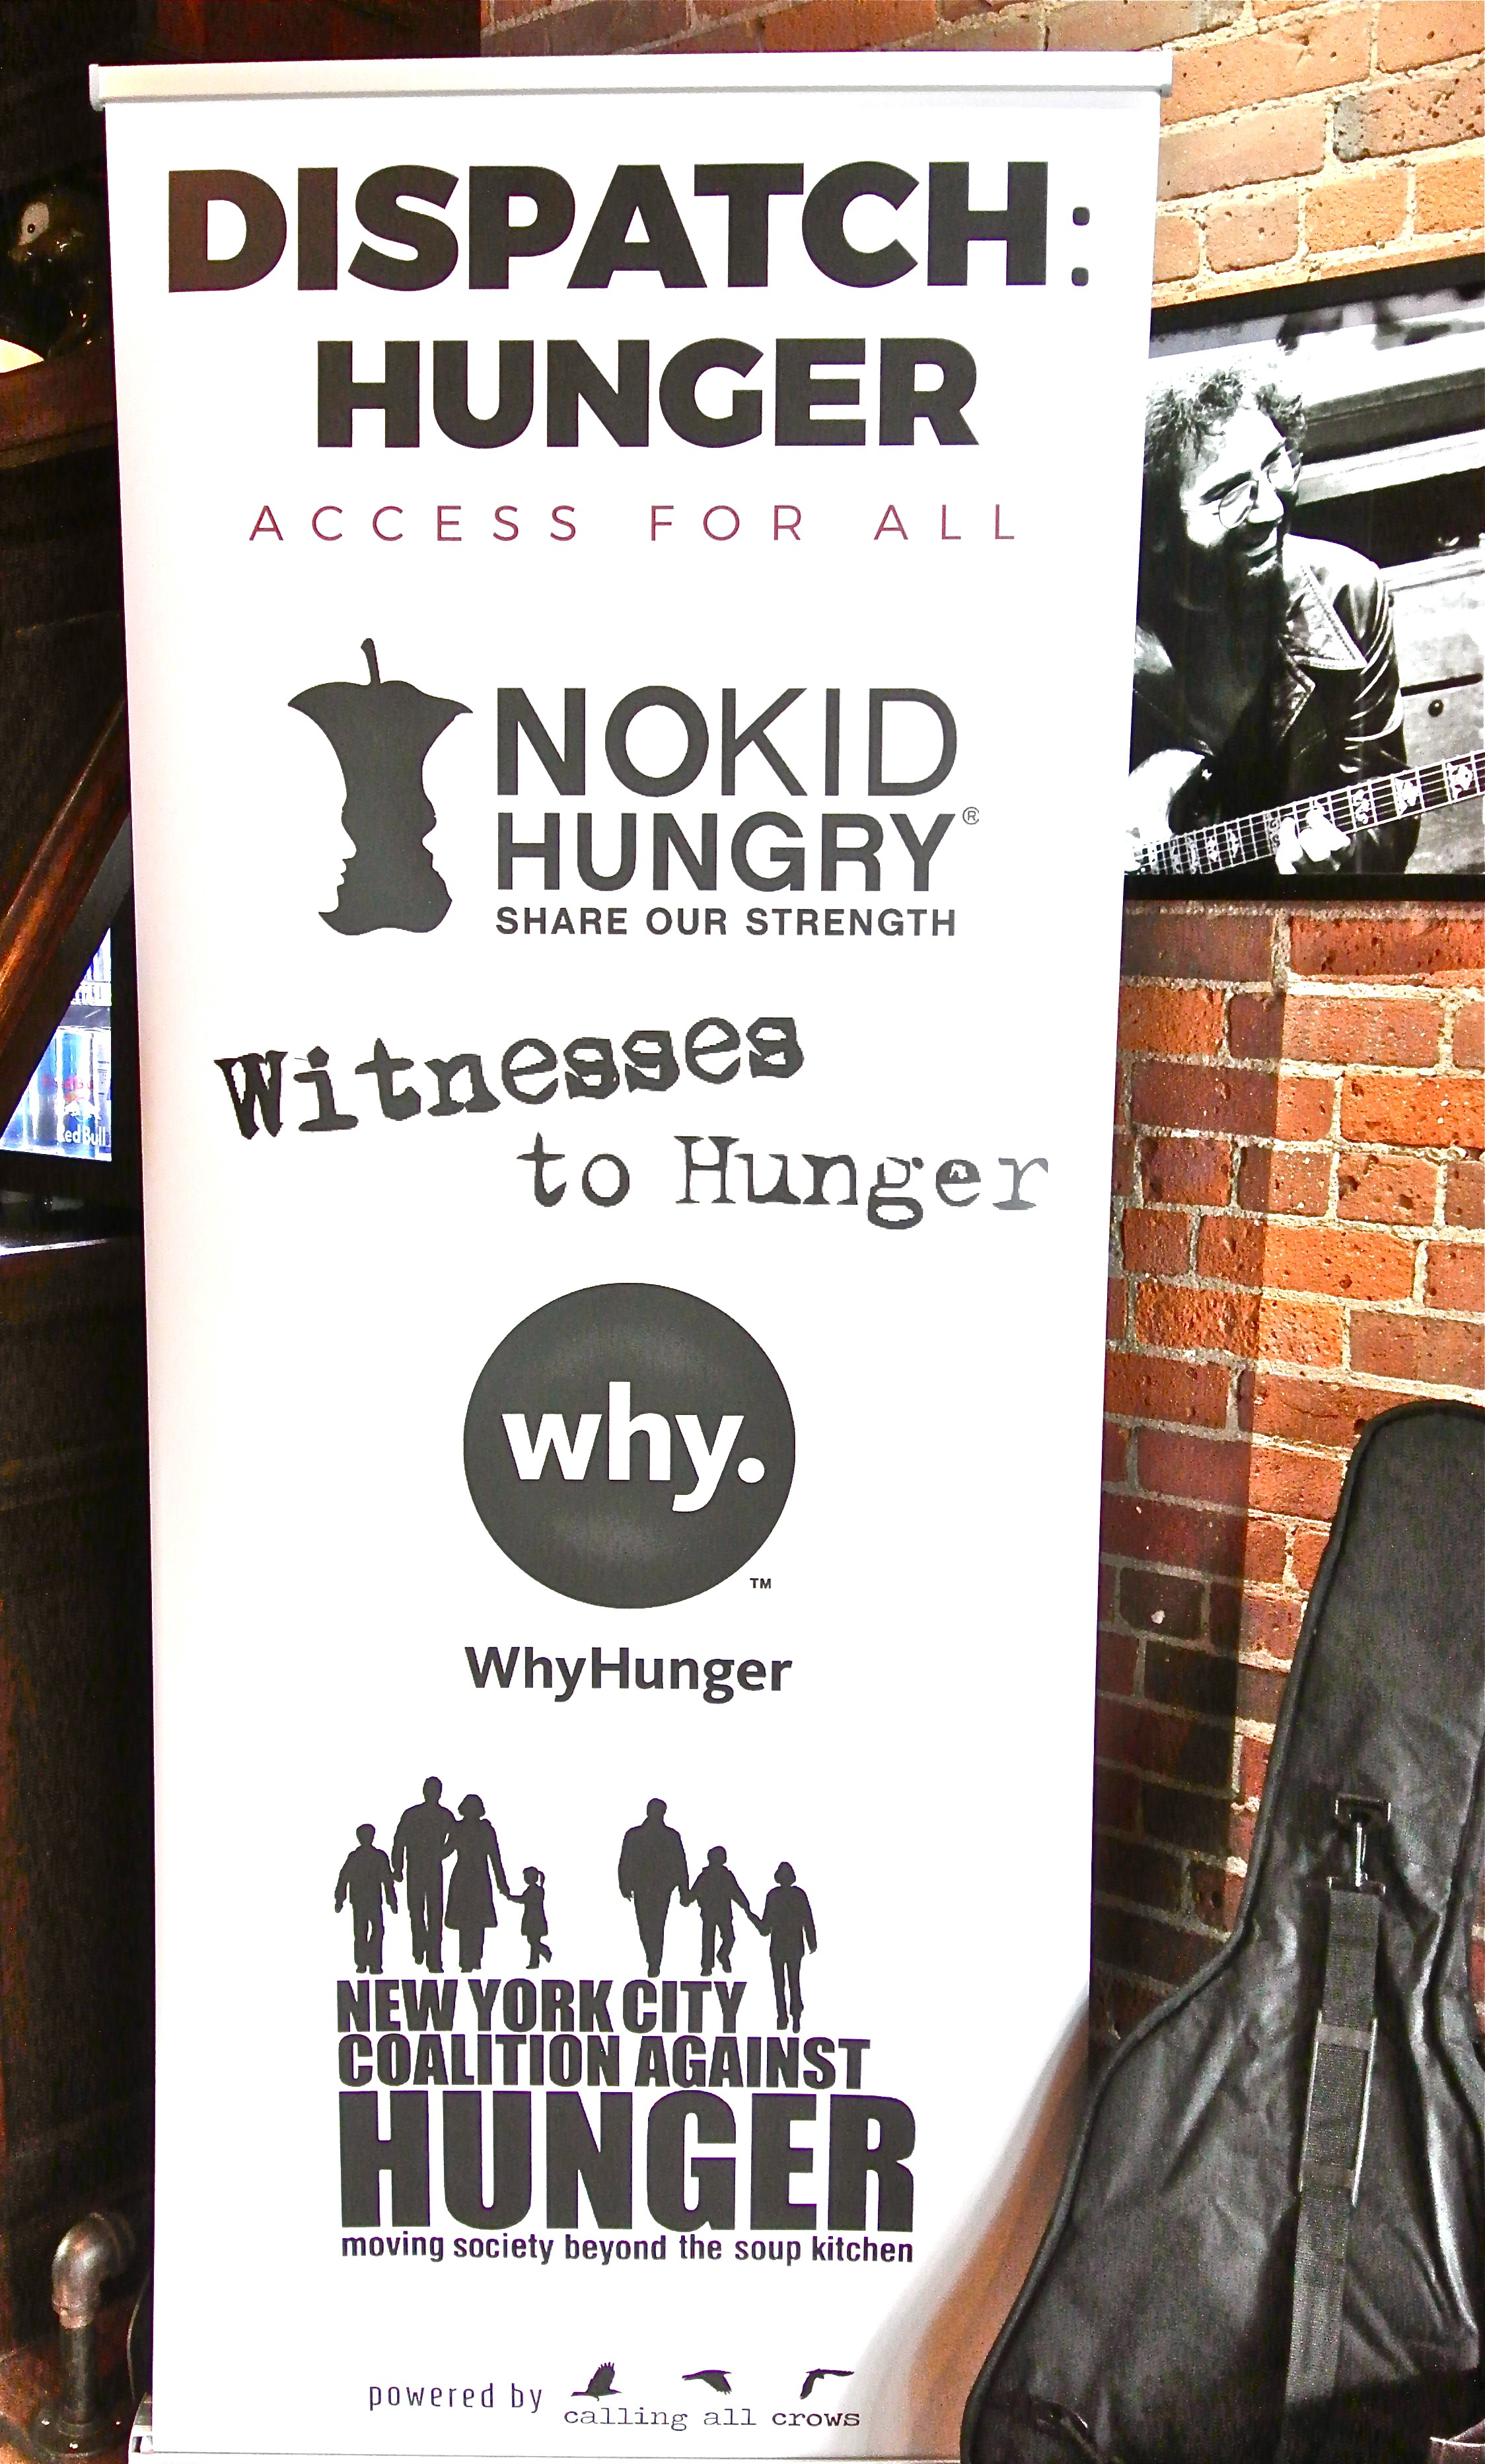 DISPATCH: HUNGER - WhyHunger